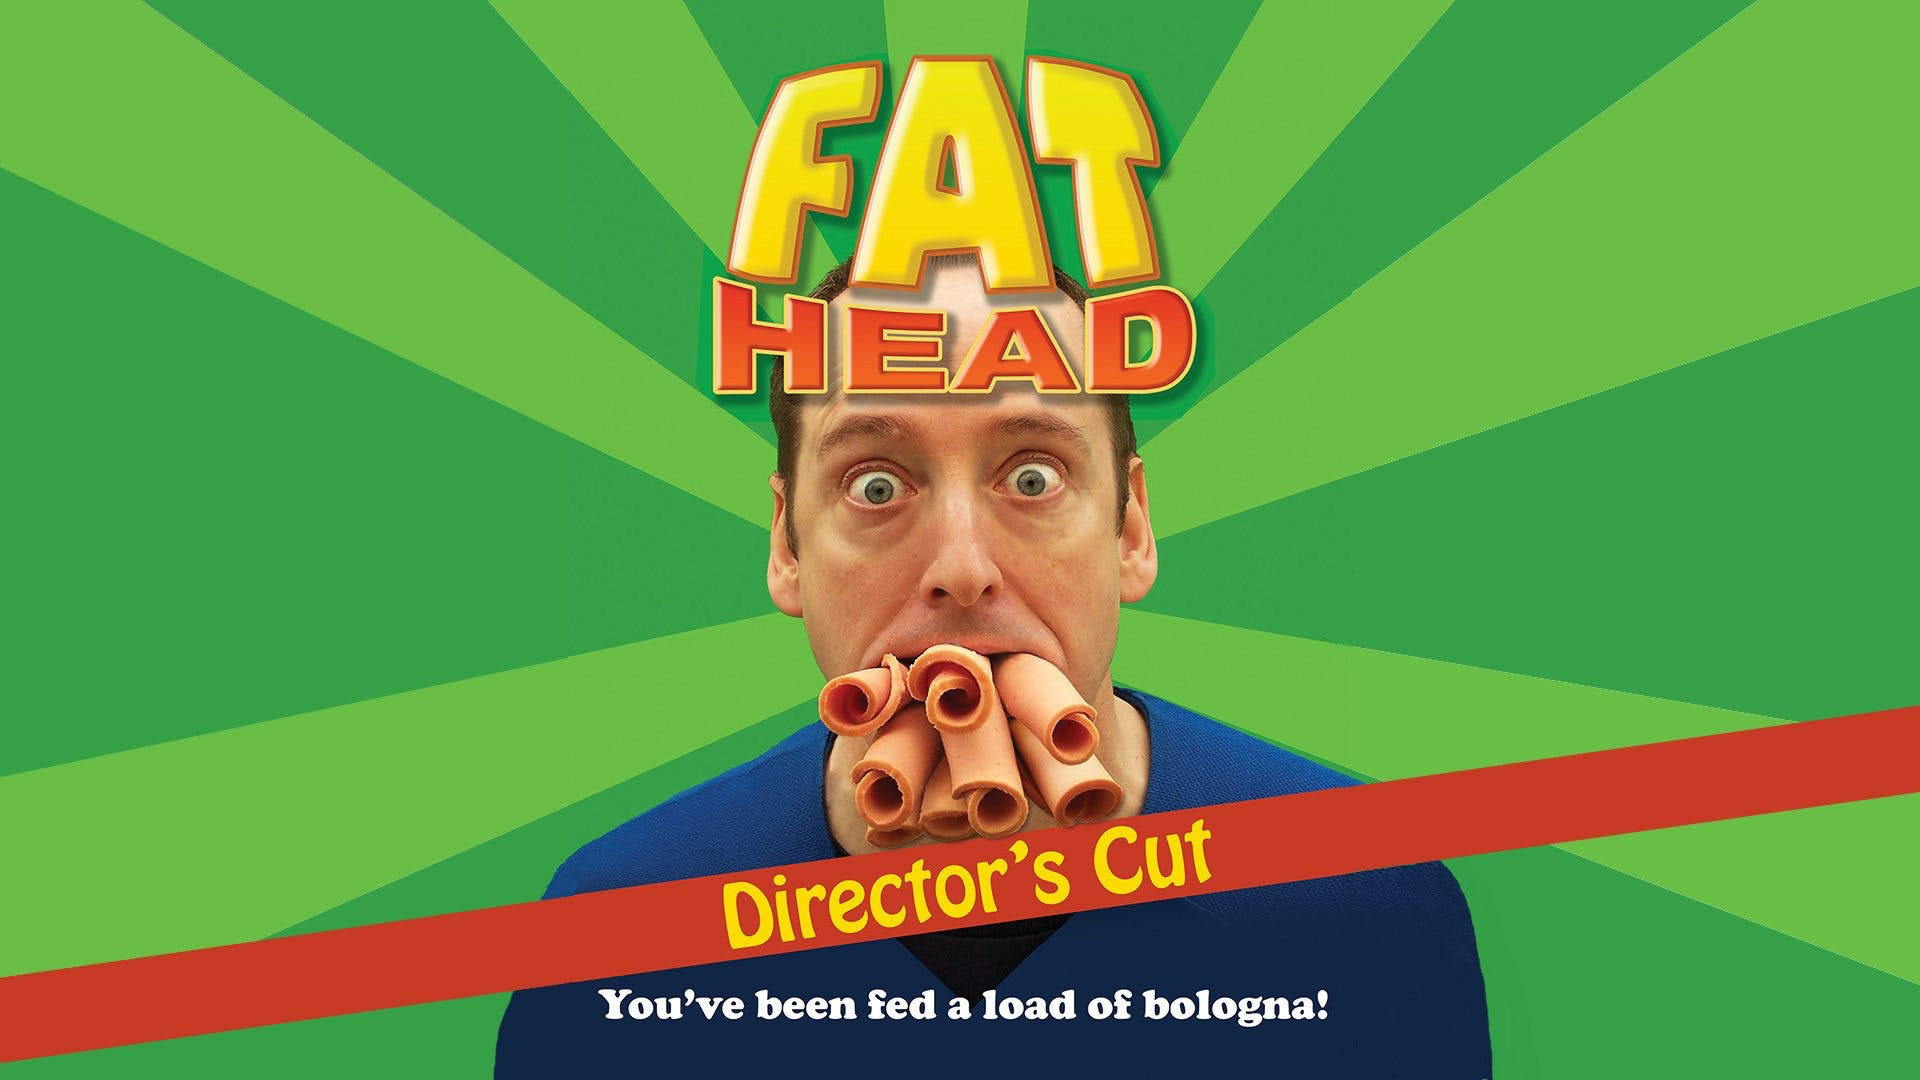 Fat Head Director's Cut